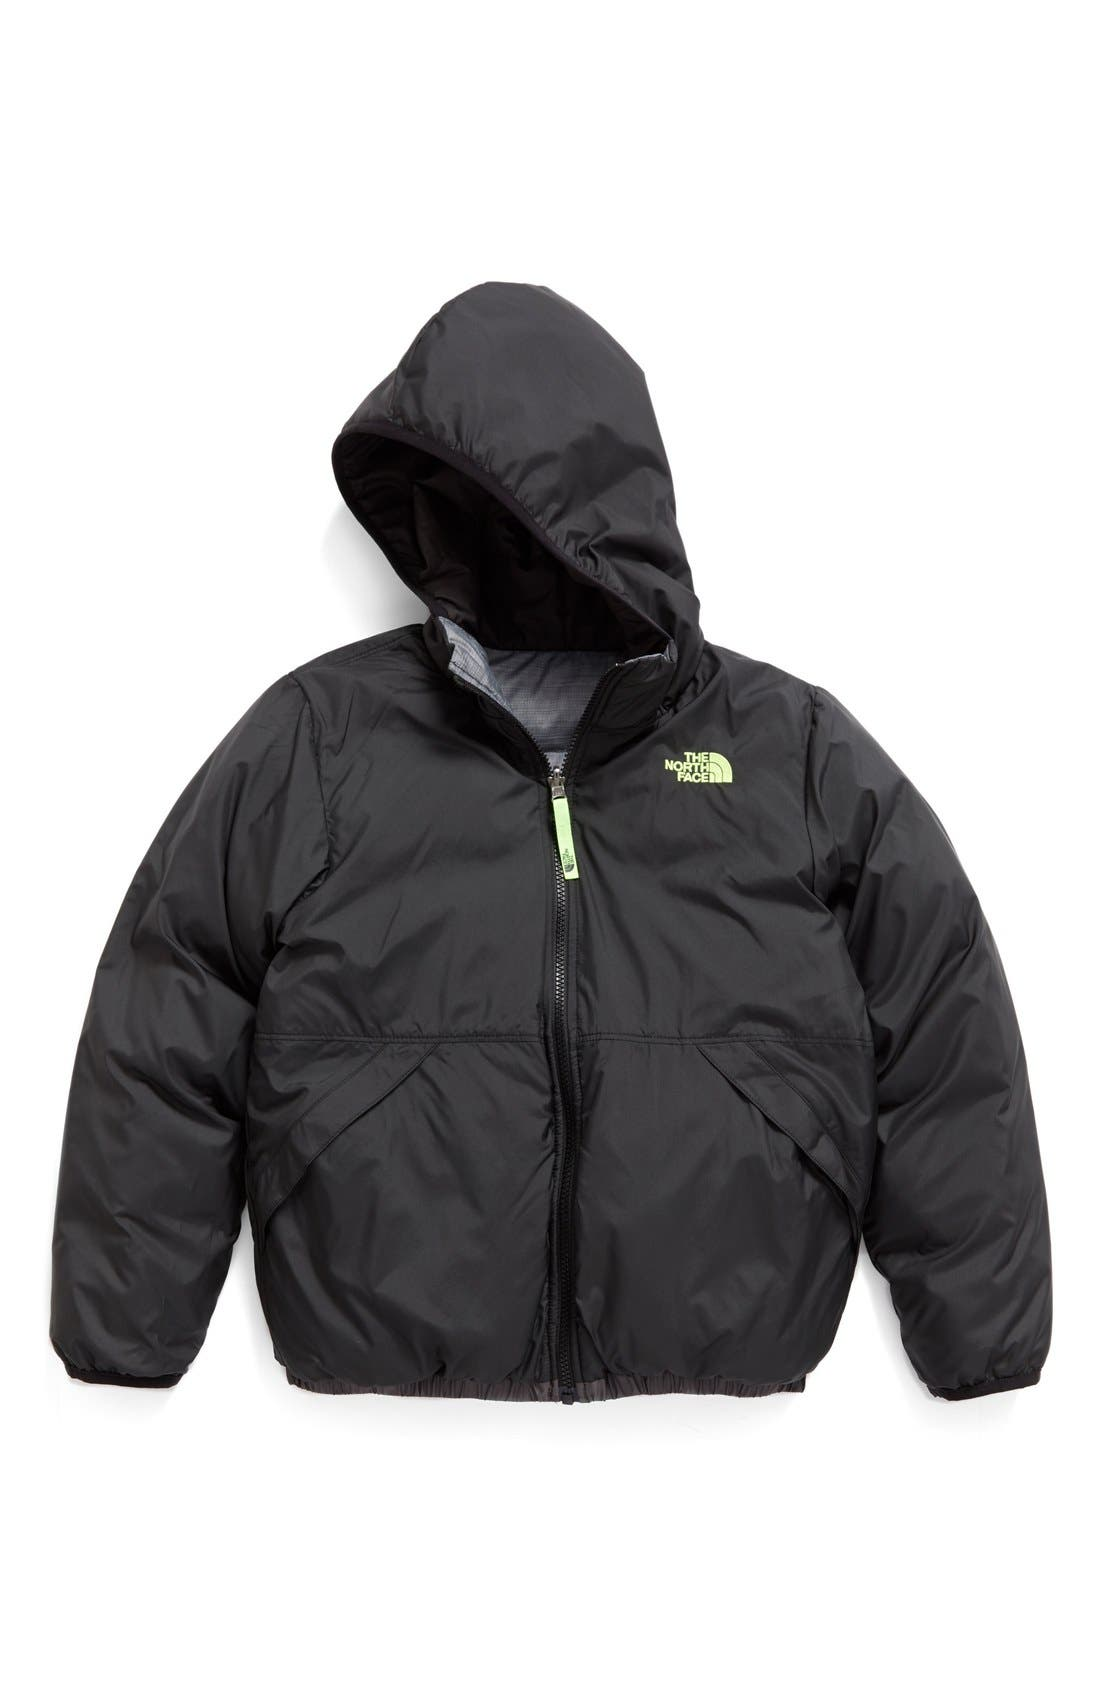 Alternate Image 2  - The North Face 'Moondoggy' Water Repellent Reversible Down Jacket (Big Boys)